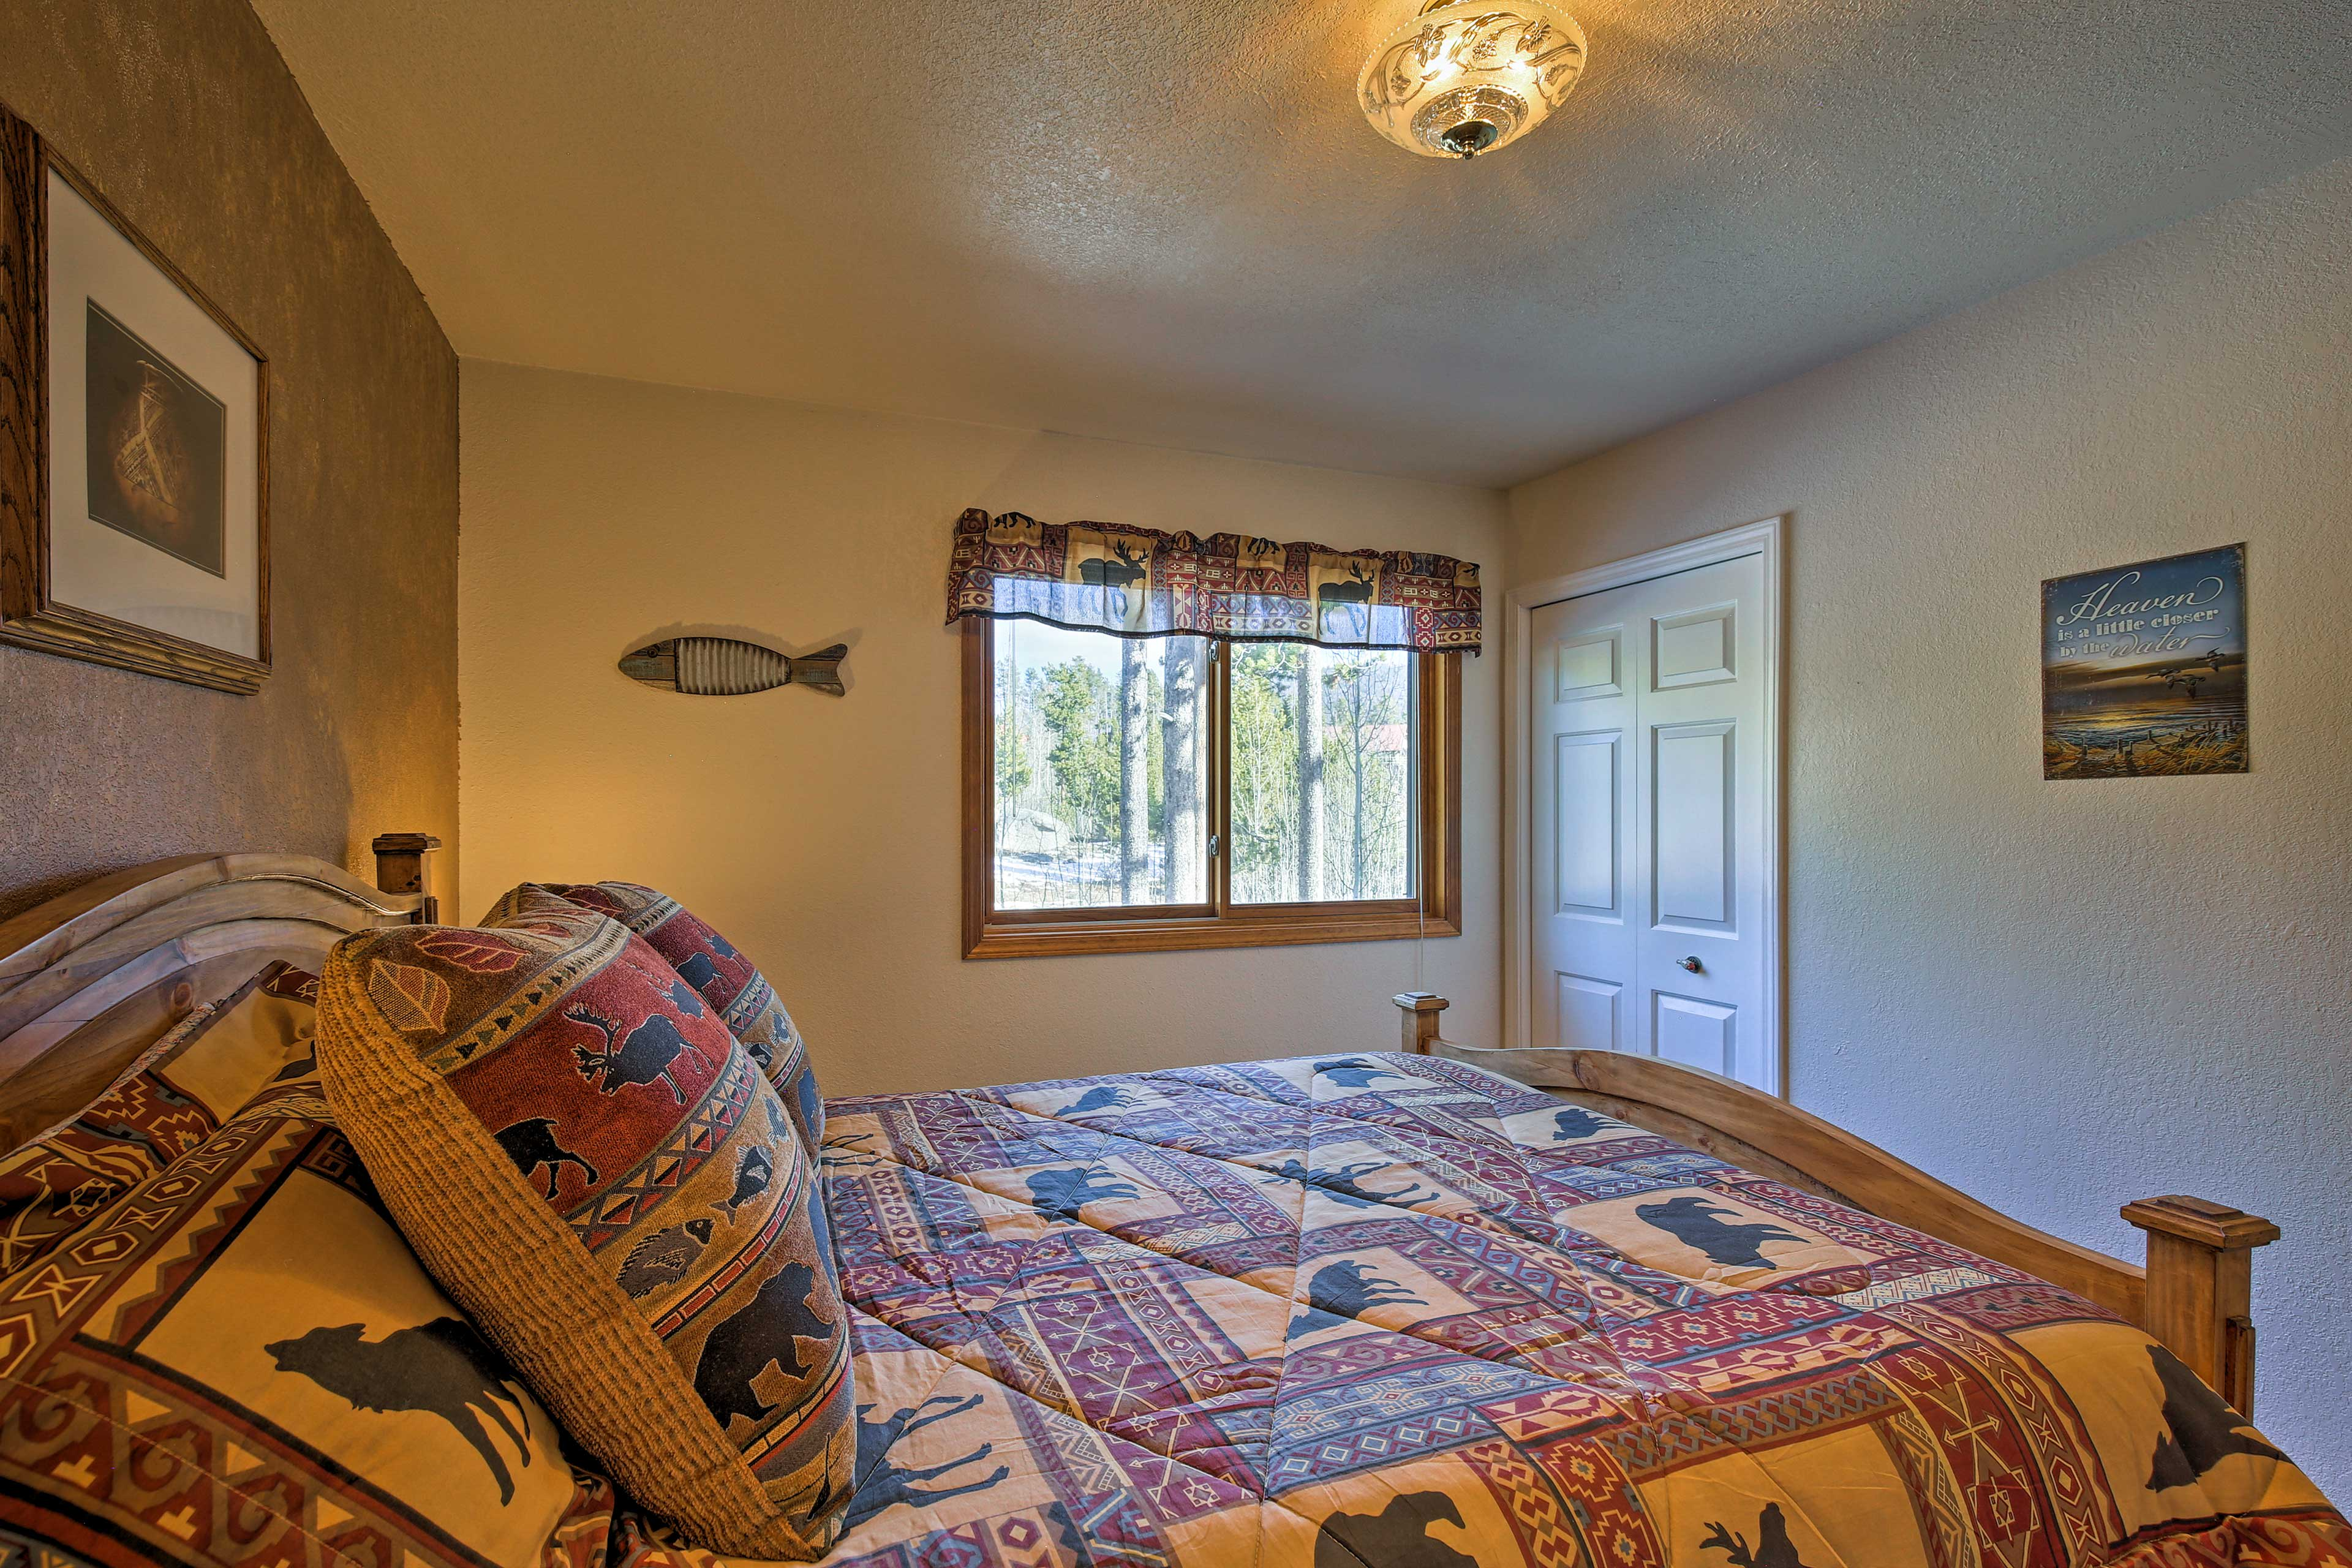 Wake up feeling refreshed as natural light pours into the room.